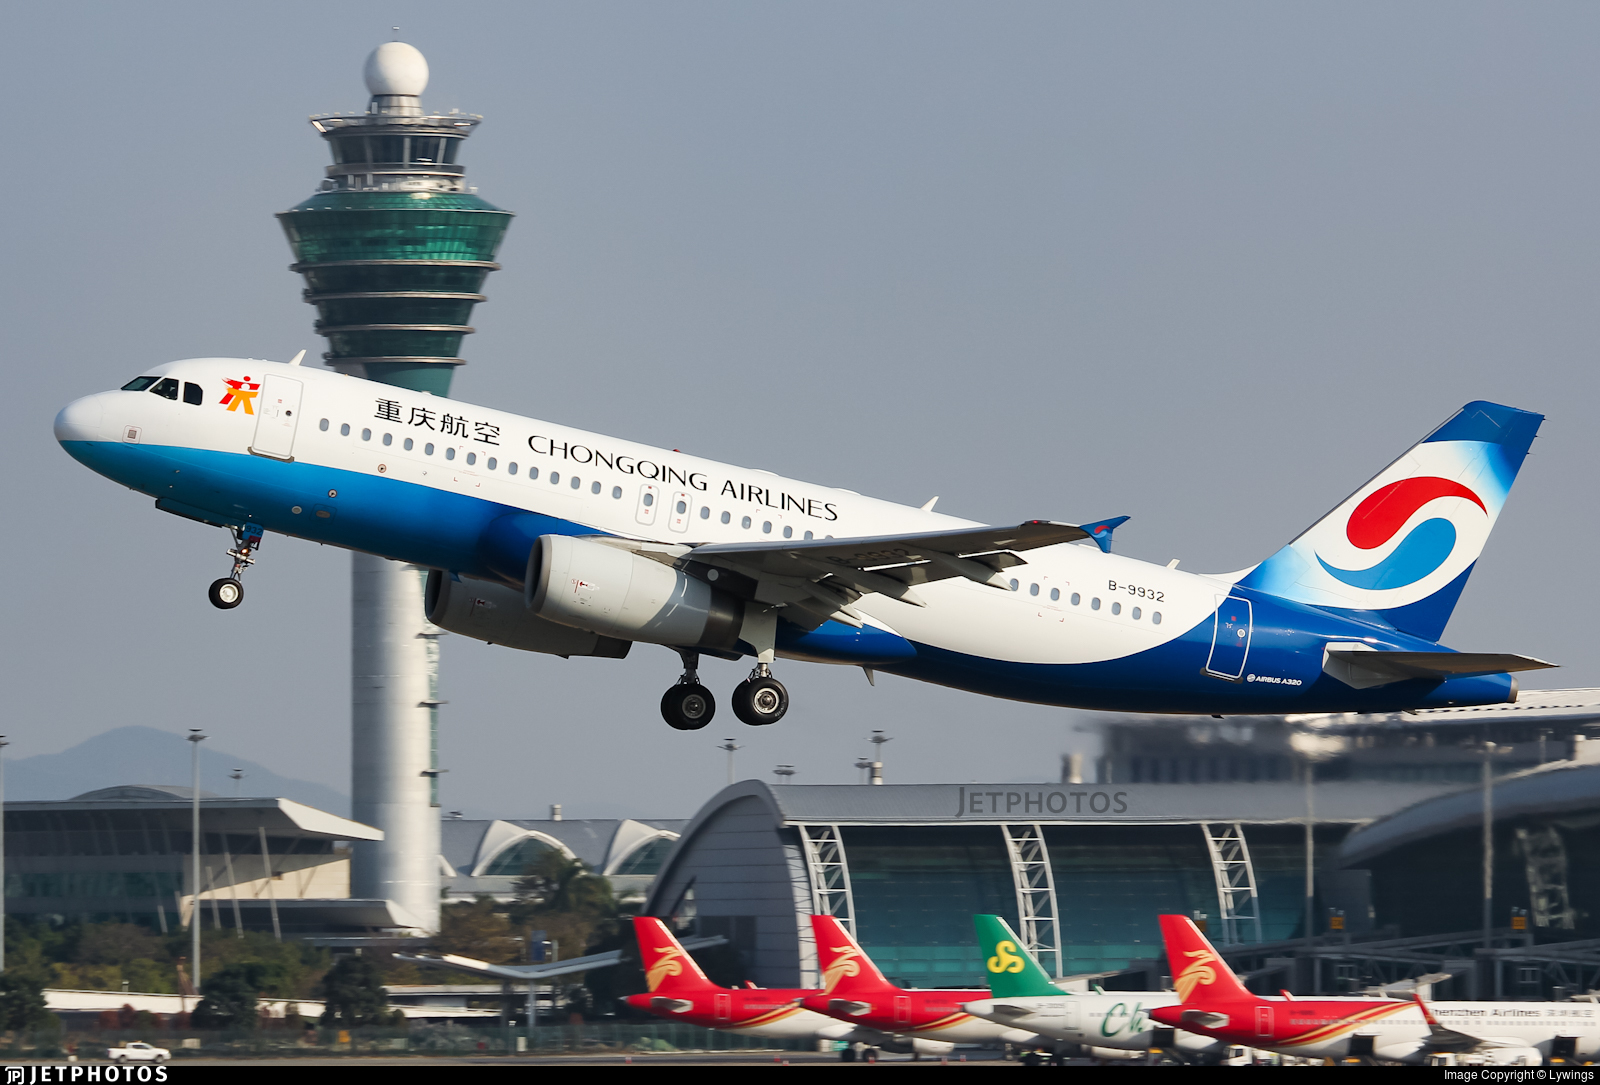 B-9932 - Airbus A320-232 - Chongqing Airlines